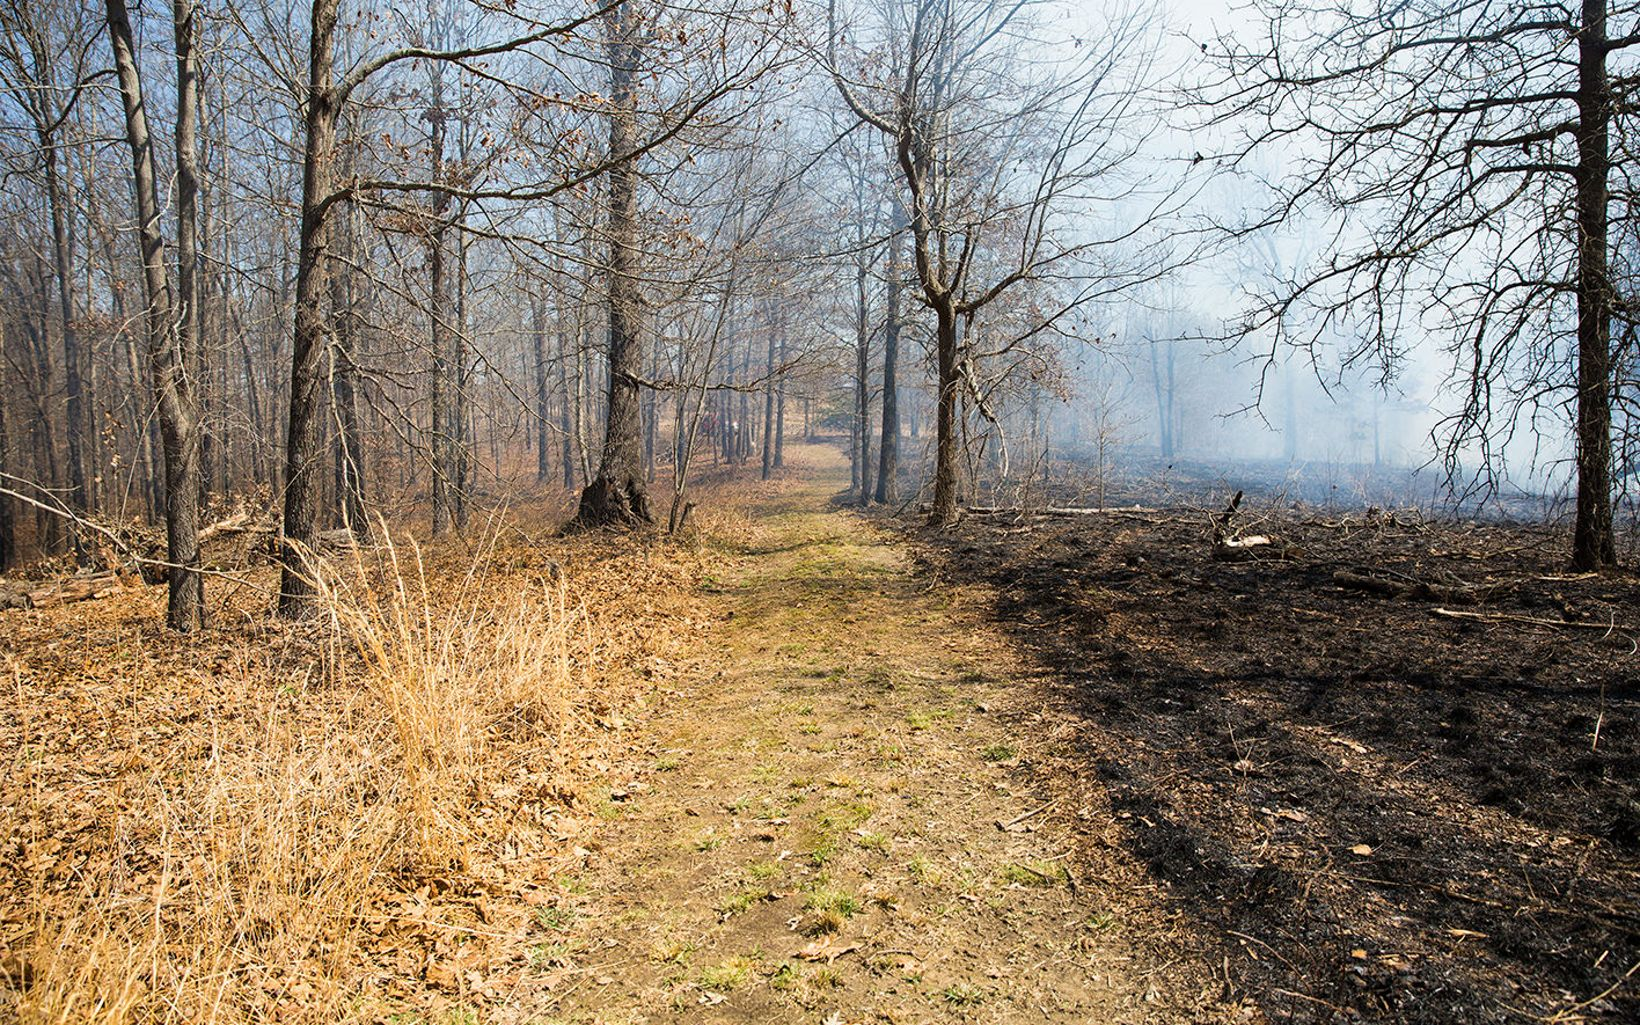 A line of bare dirt separates dry grasses on the left from a black, burned area on the right.